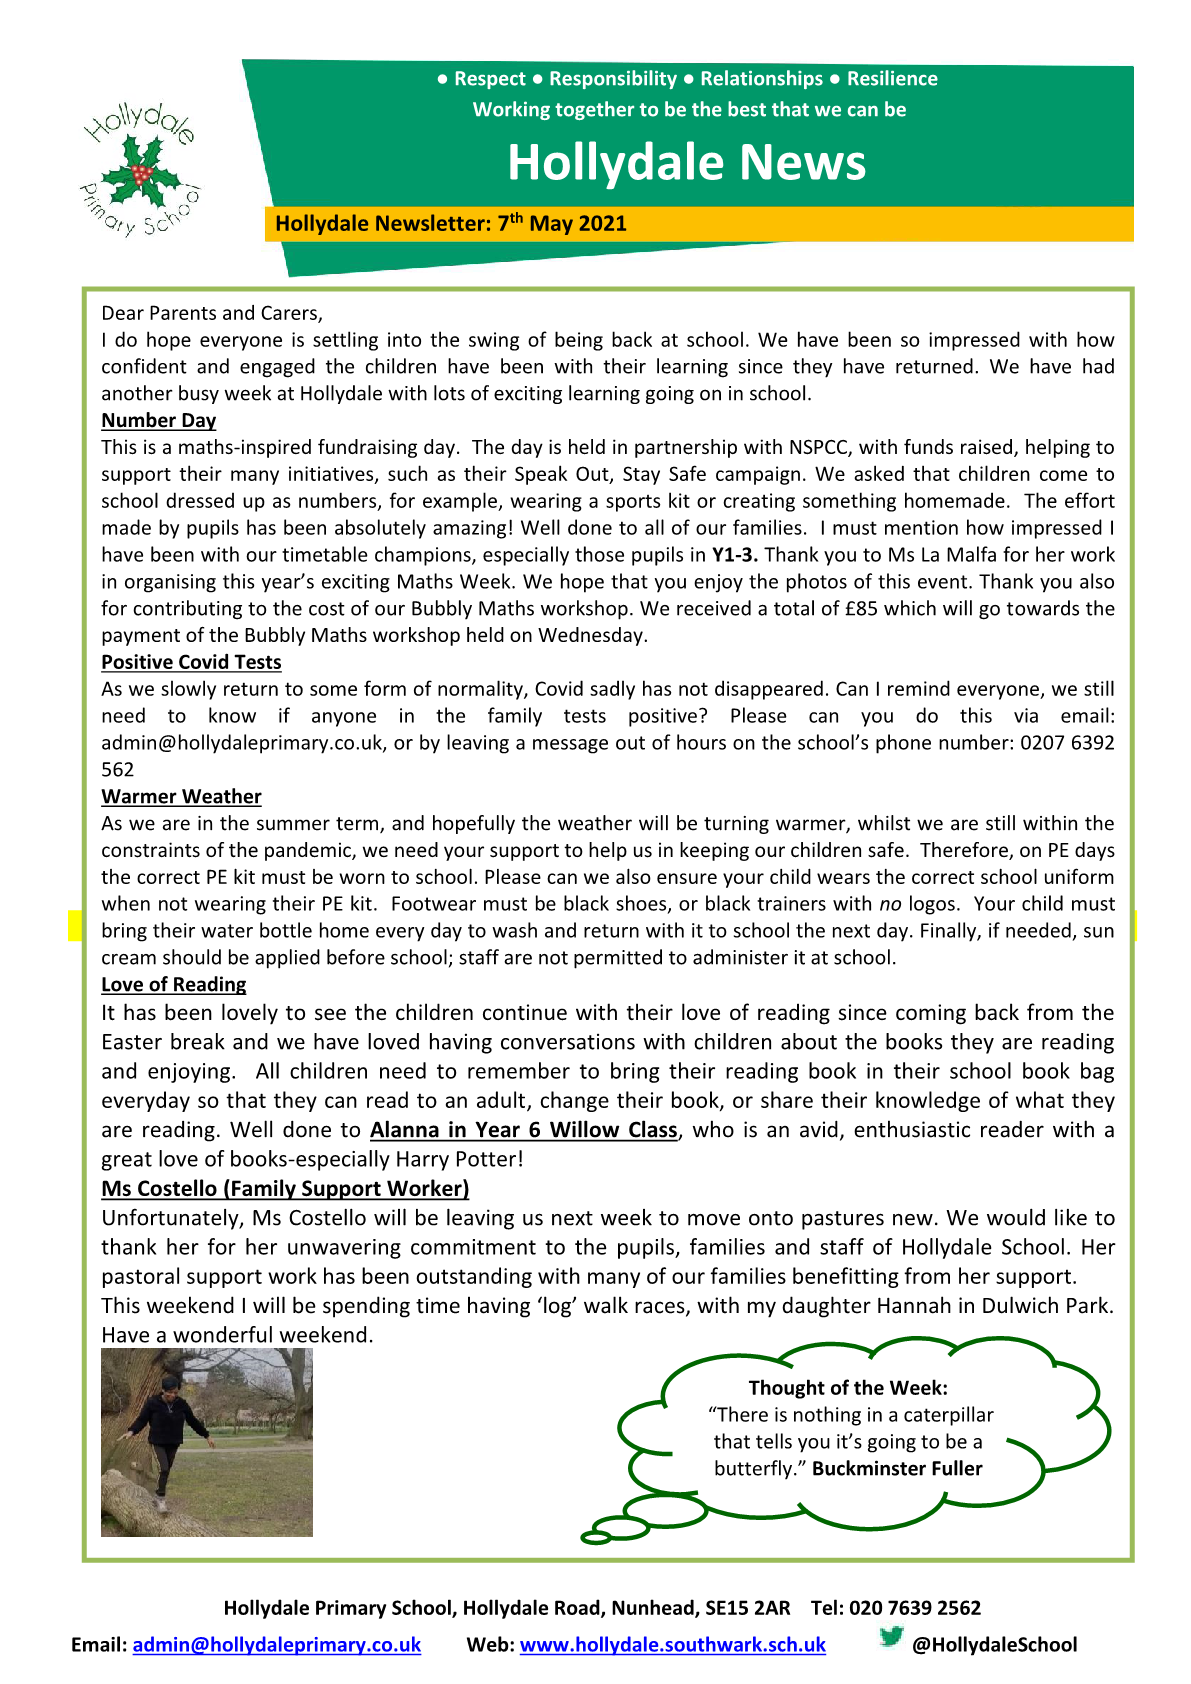 Newsletter 7th May 2021